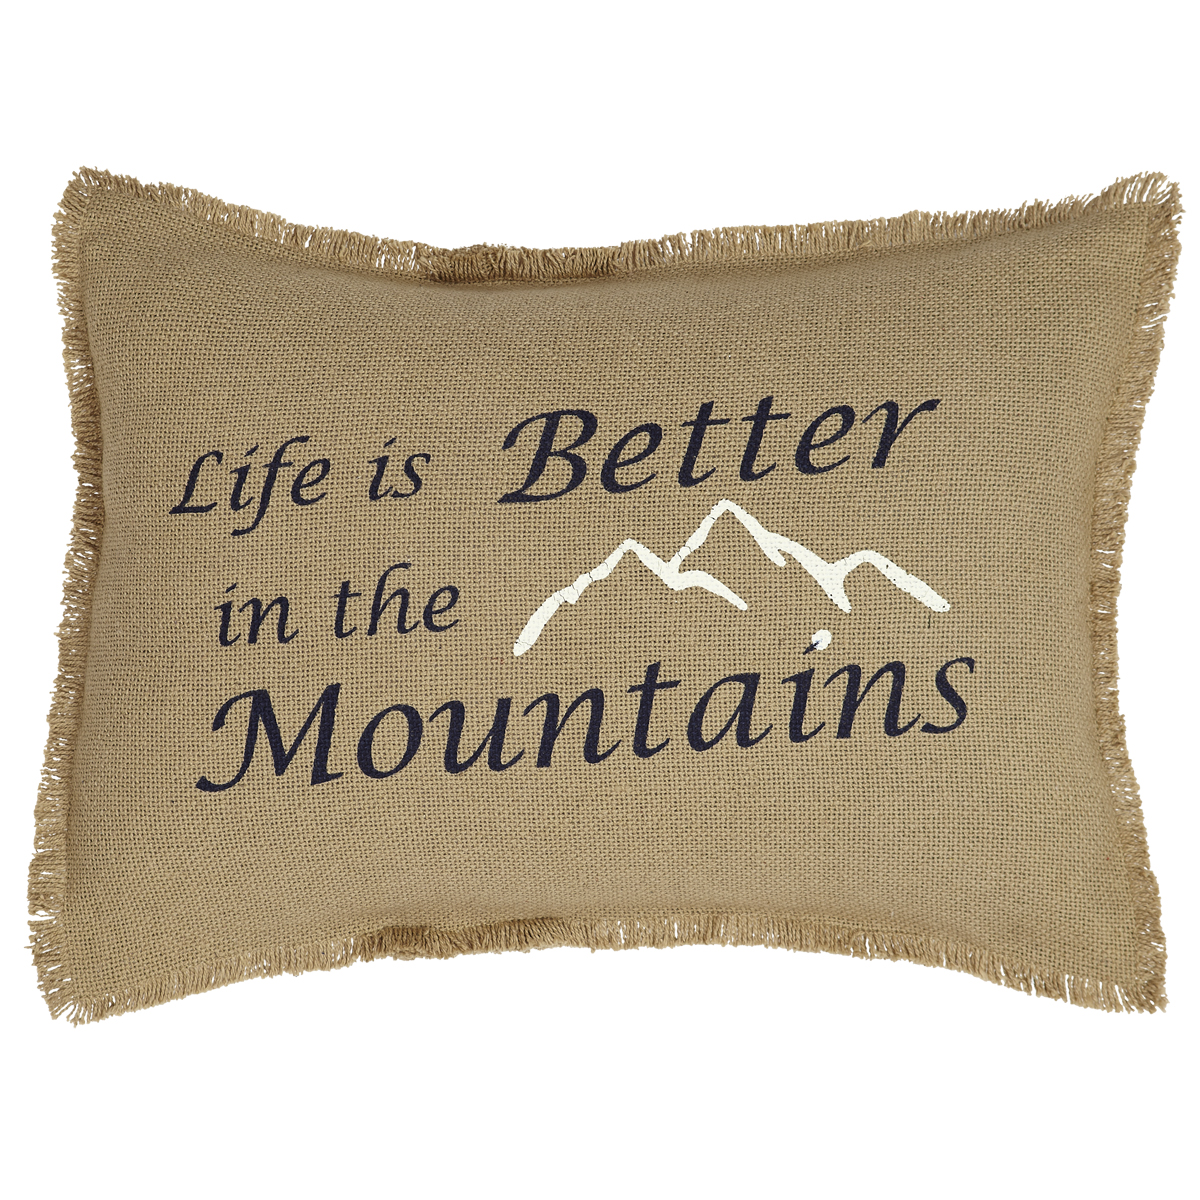 BURLAP NATURAL Pillow -  Life/Mountains -14x18 - VHC Brands - Country Farmhouse